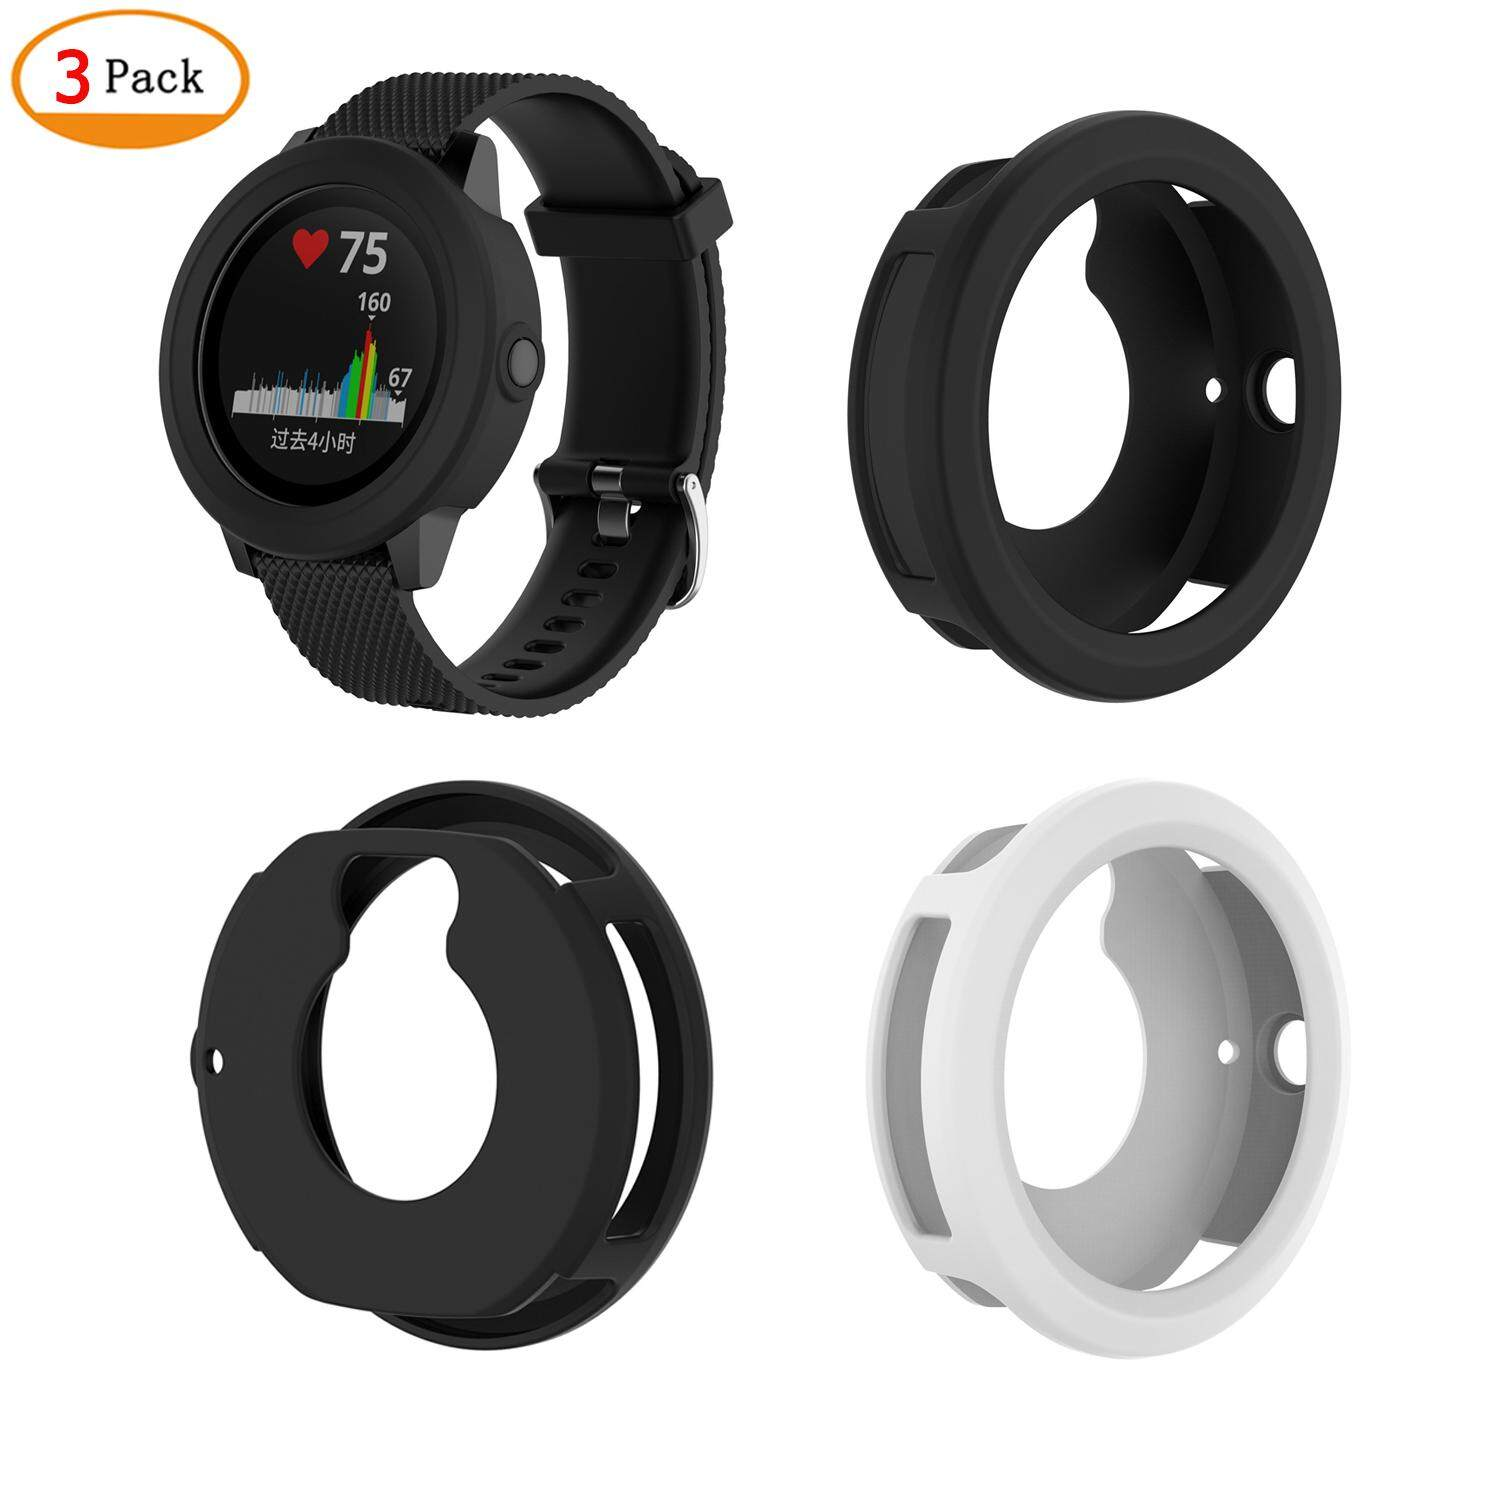 Shop Smartwatch Cases Buy At Best Price In Xiaomi Amazfit Pace 2 Stratos Cover Bumper Case Shell Frame Protector 3 Pack Silicone Screen For Garmin Vivoactive Watch